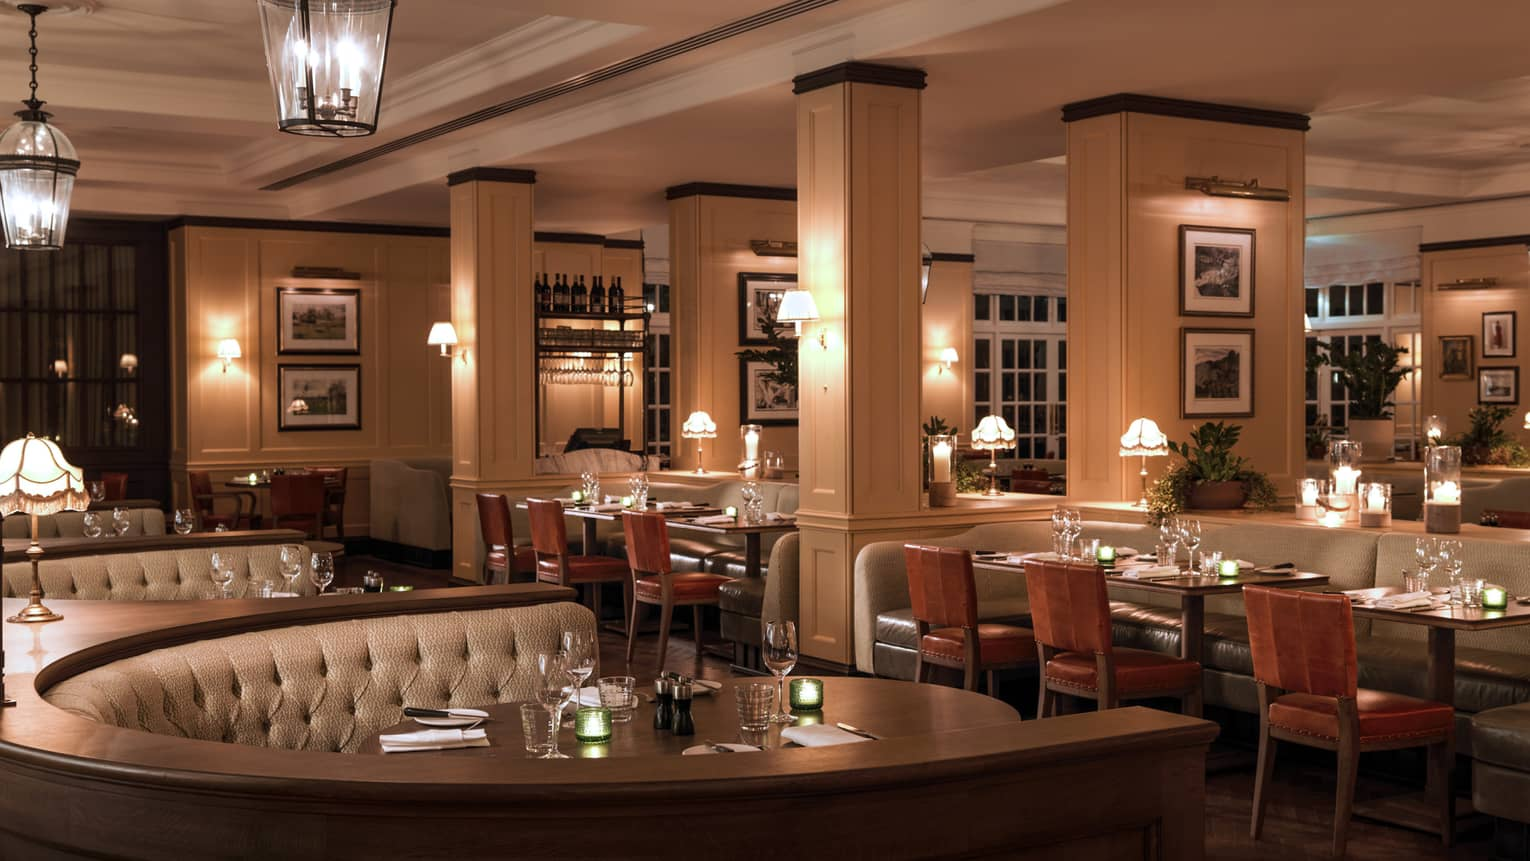 Large curved booths behind tables, chairs in dimly-lit dining room